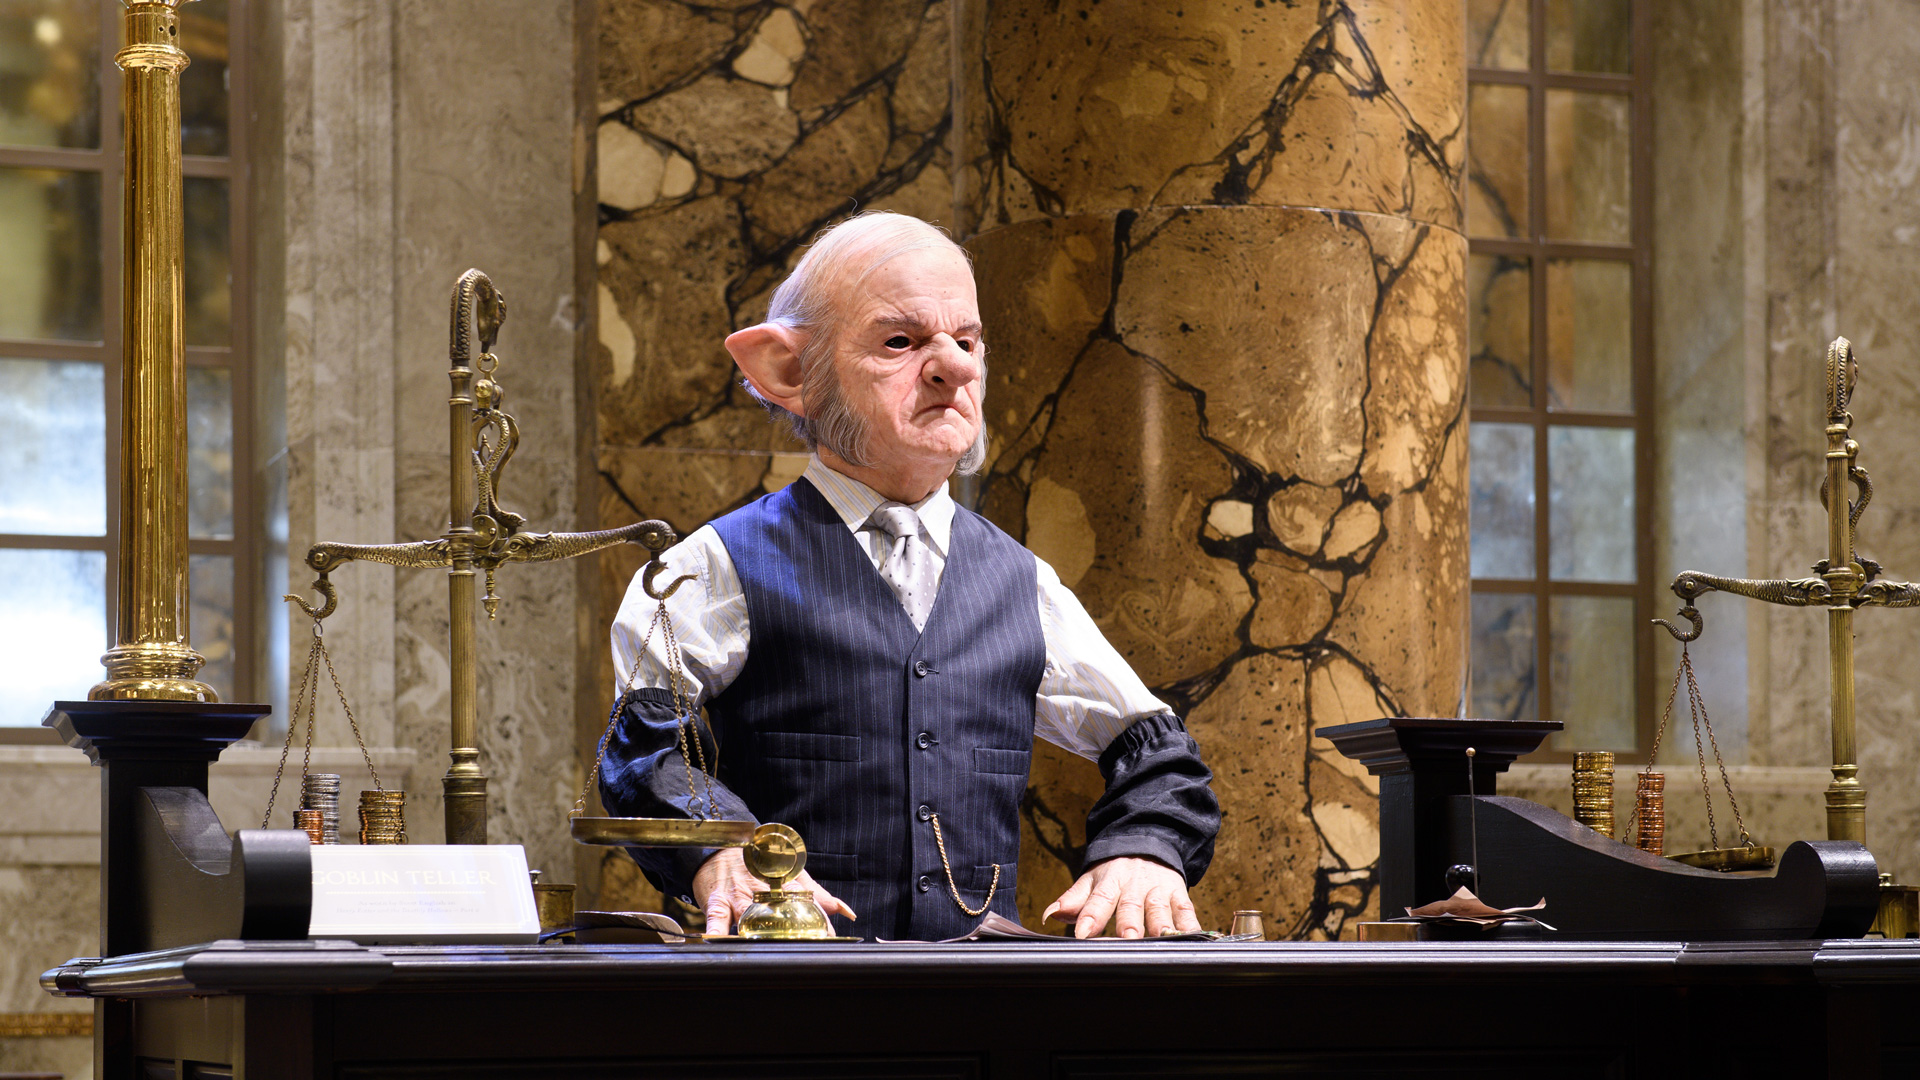 A goblin figure stands behind a bank desk as part of the set of the Gringotts Wizarding Bank display.